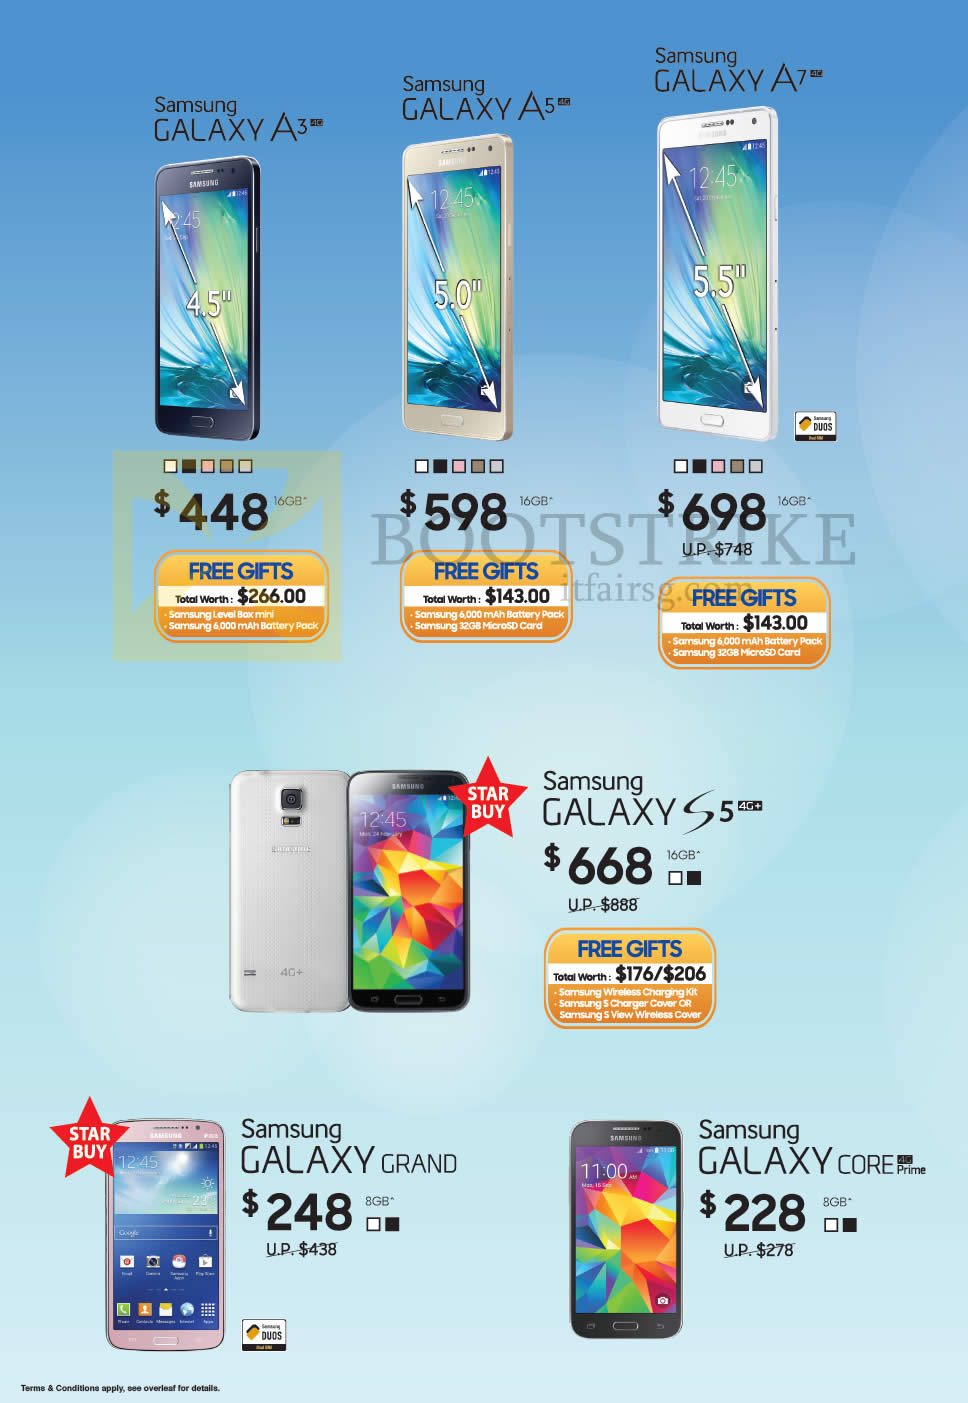 PC SHOW 2015 price list image brochure of Samsung Smartphones Galaxy A3, A5, A7, S5. Grand, Core